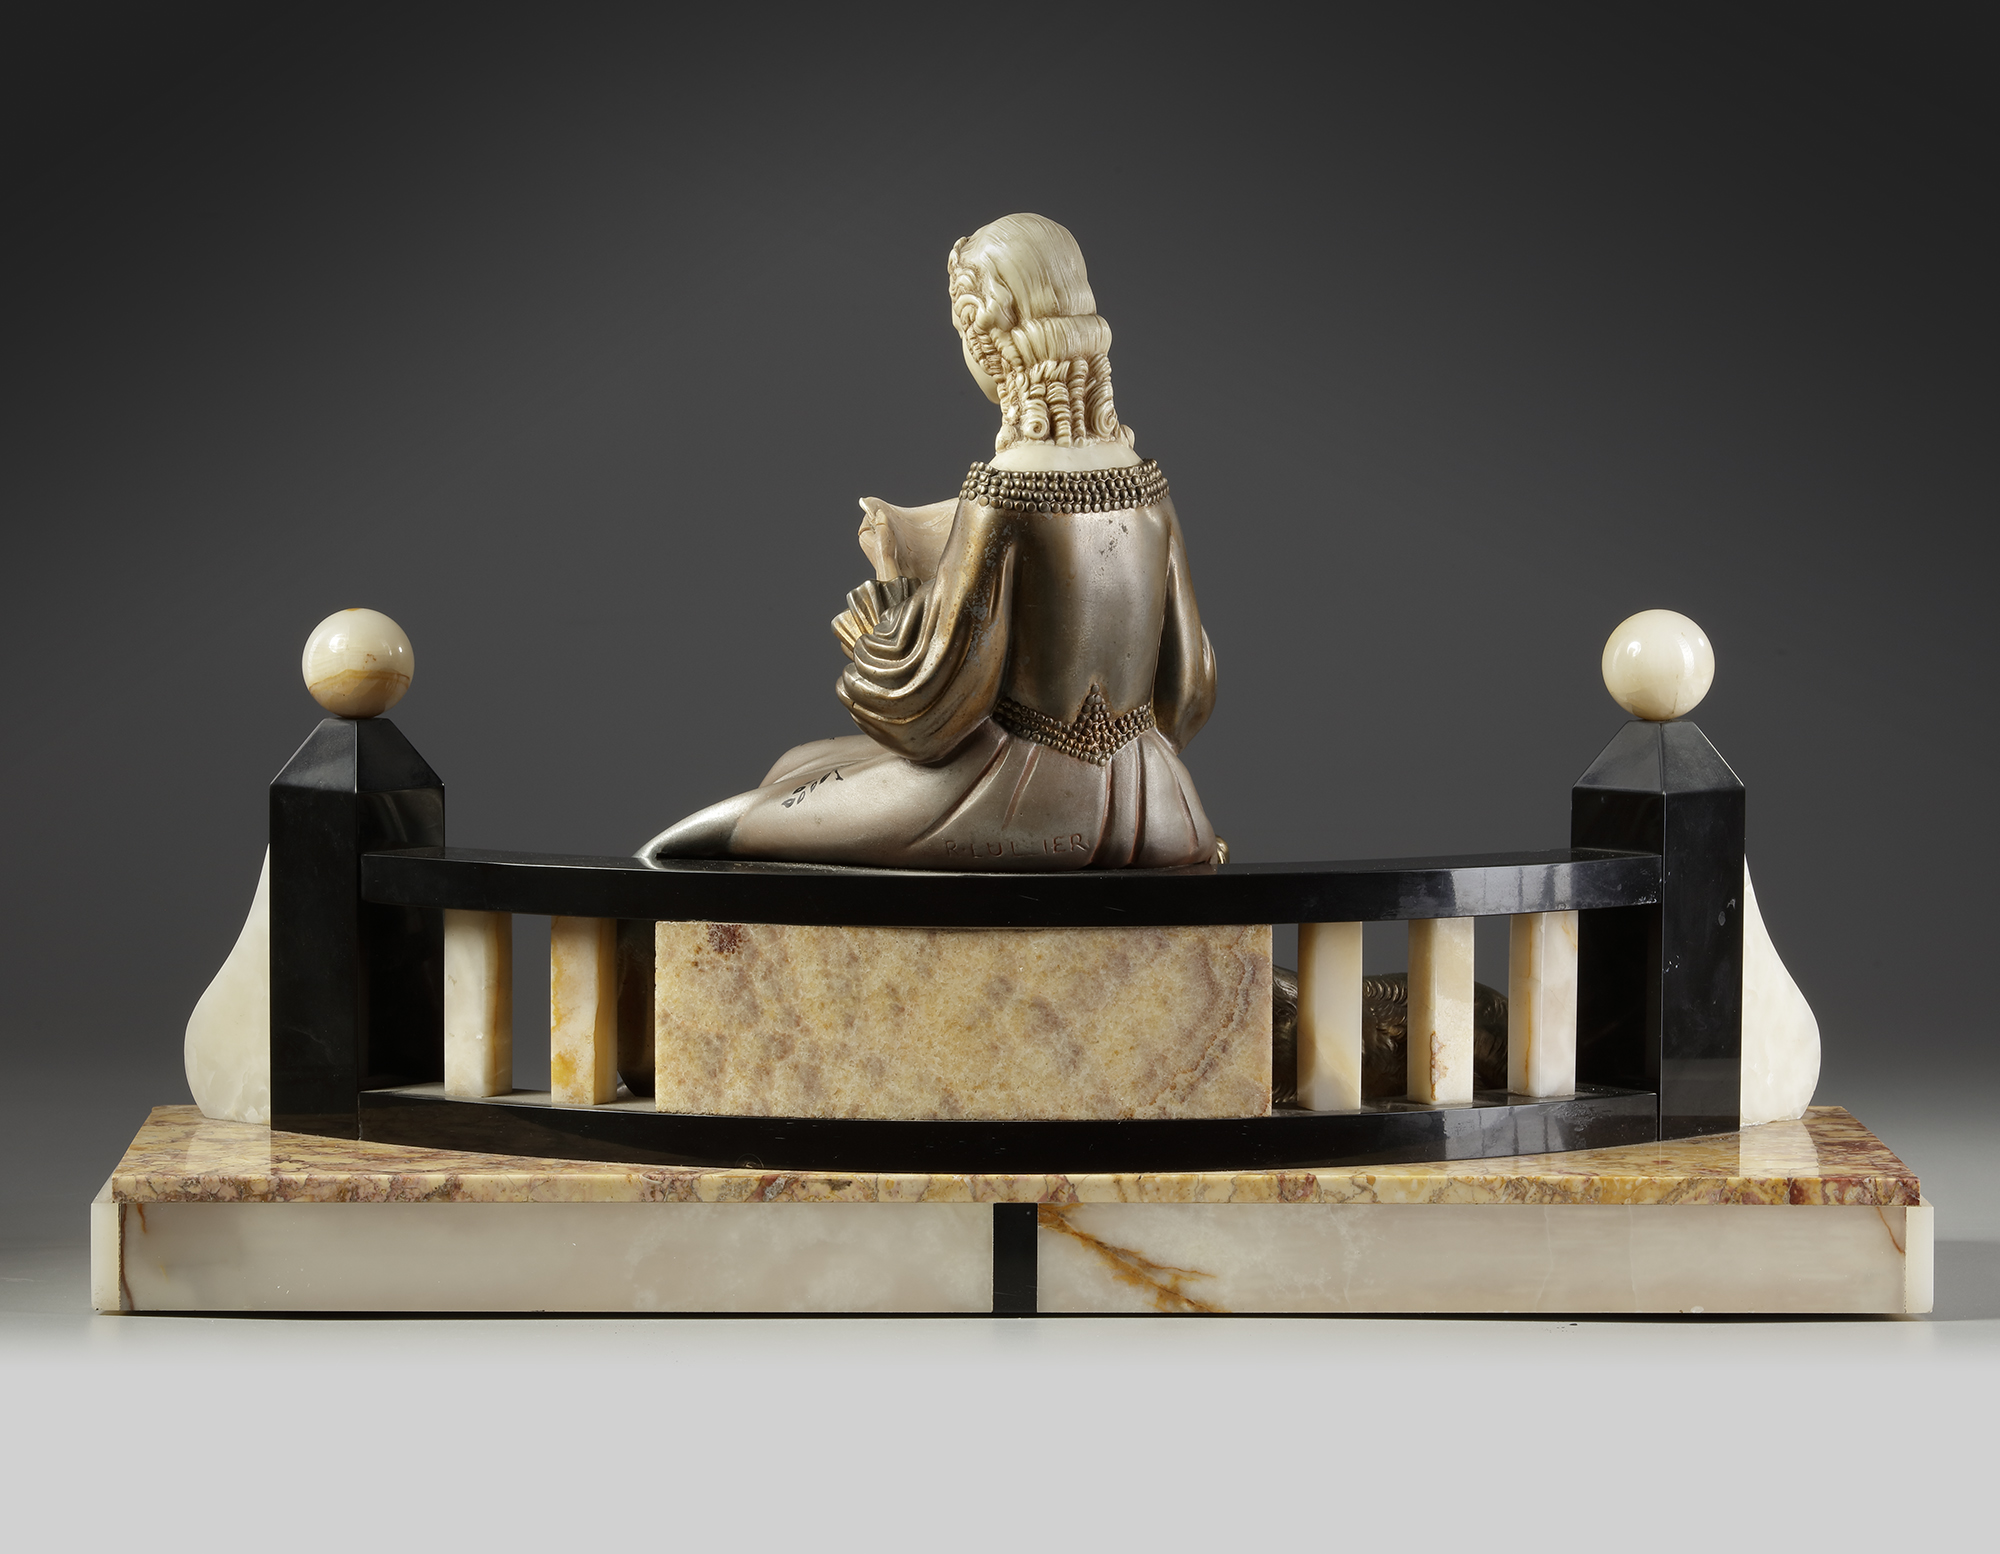 A FRENCH ART DECO STATUE, CIRCA 1925 - Image 2 of 4